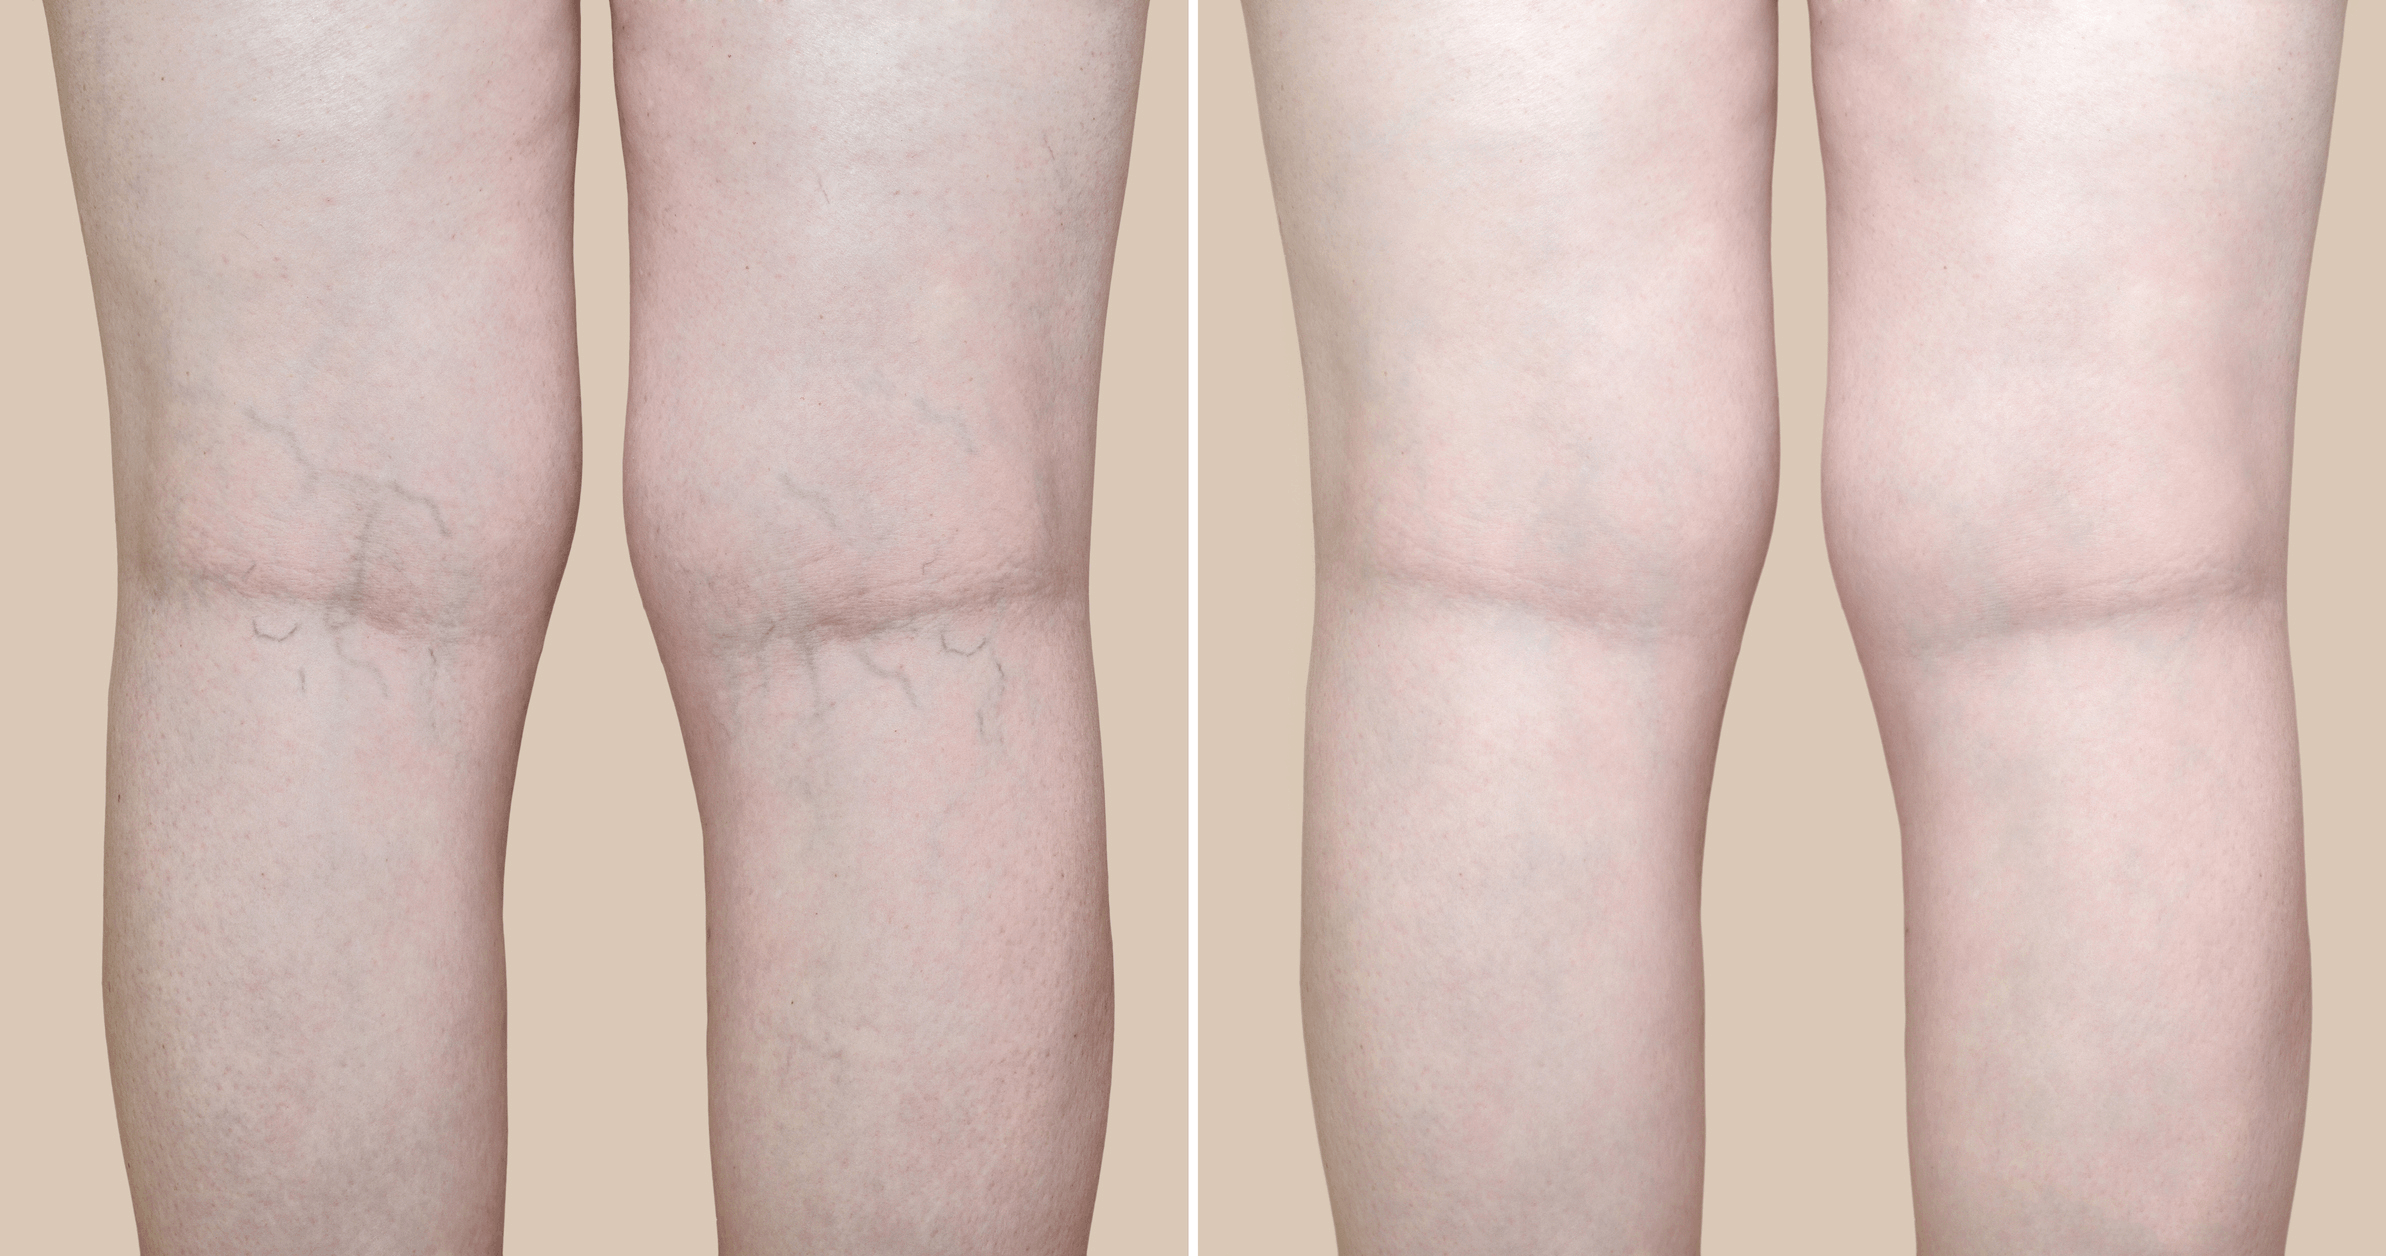 Spider Veins on legs before and after